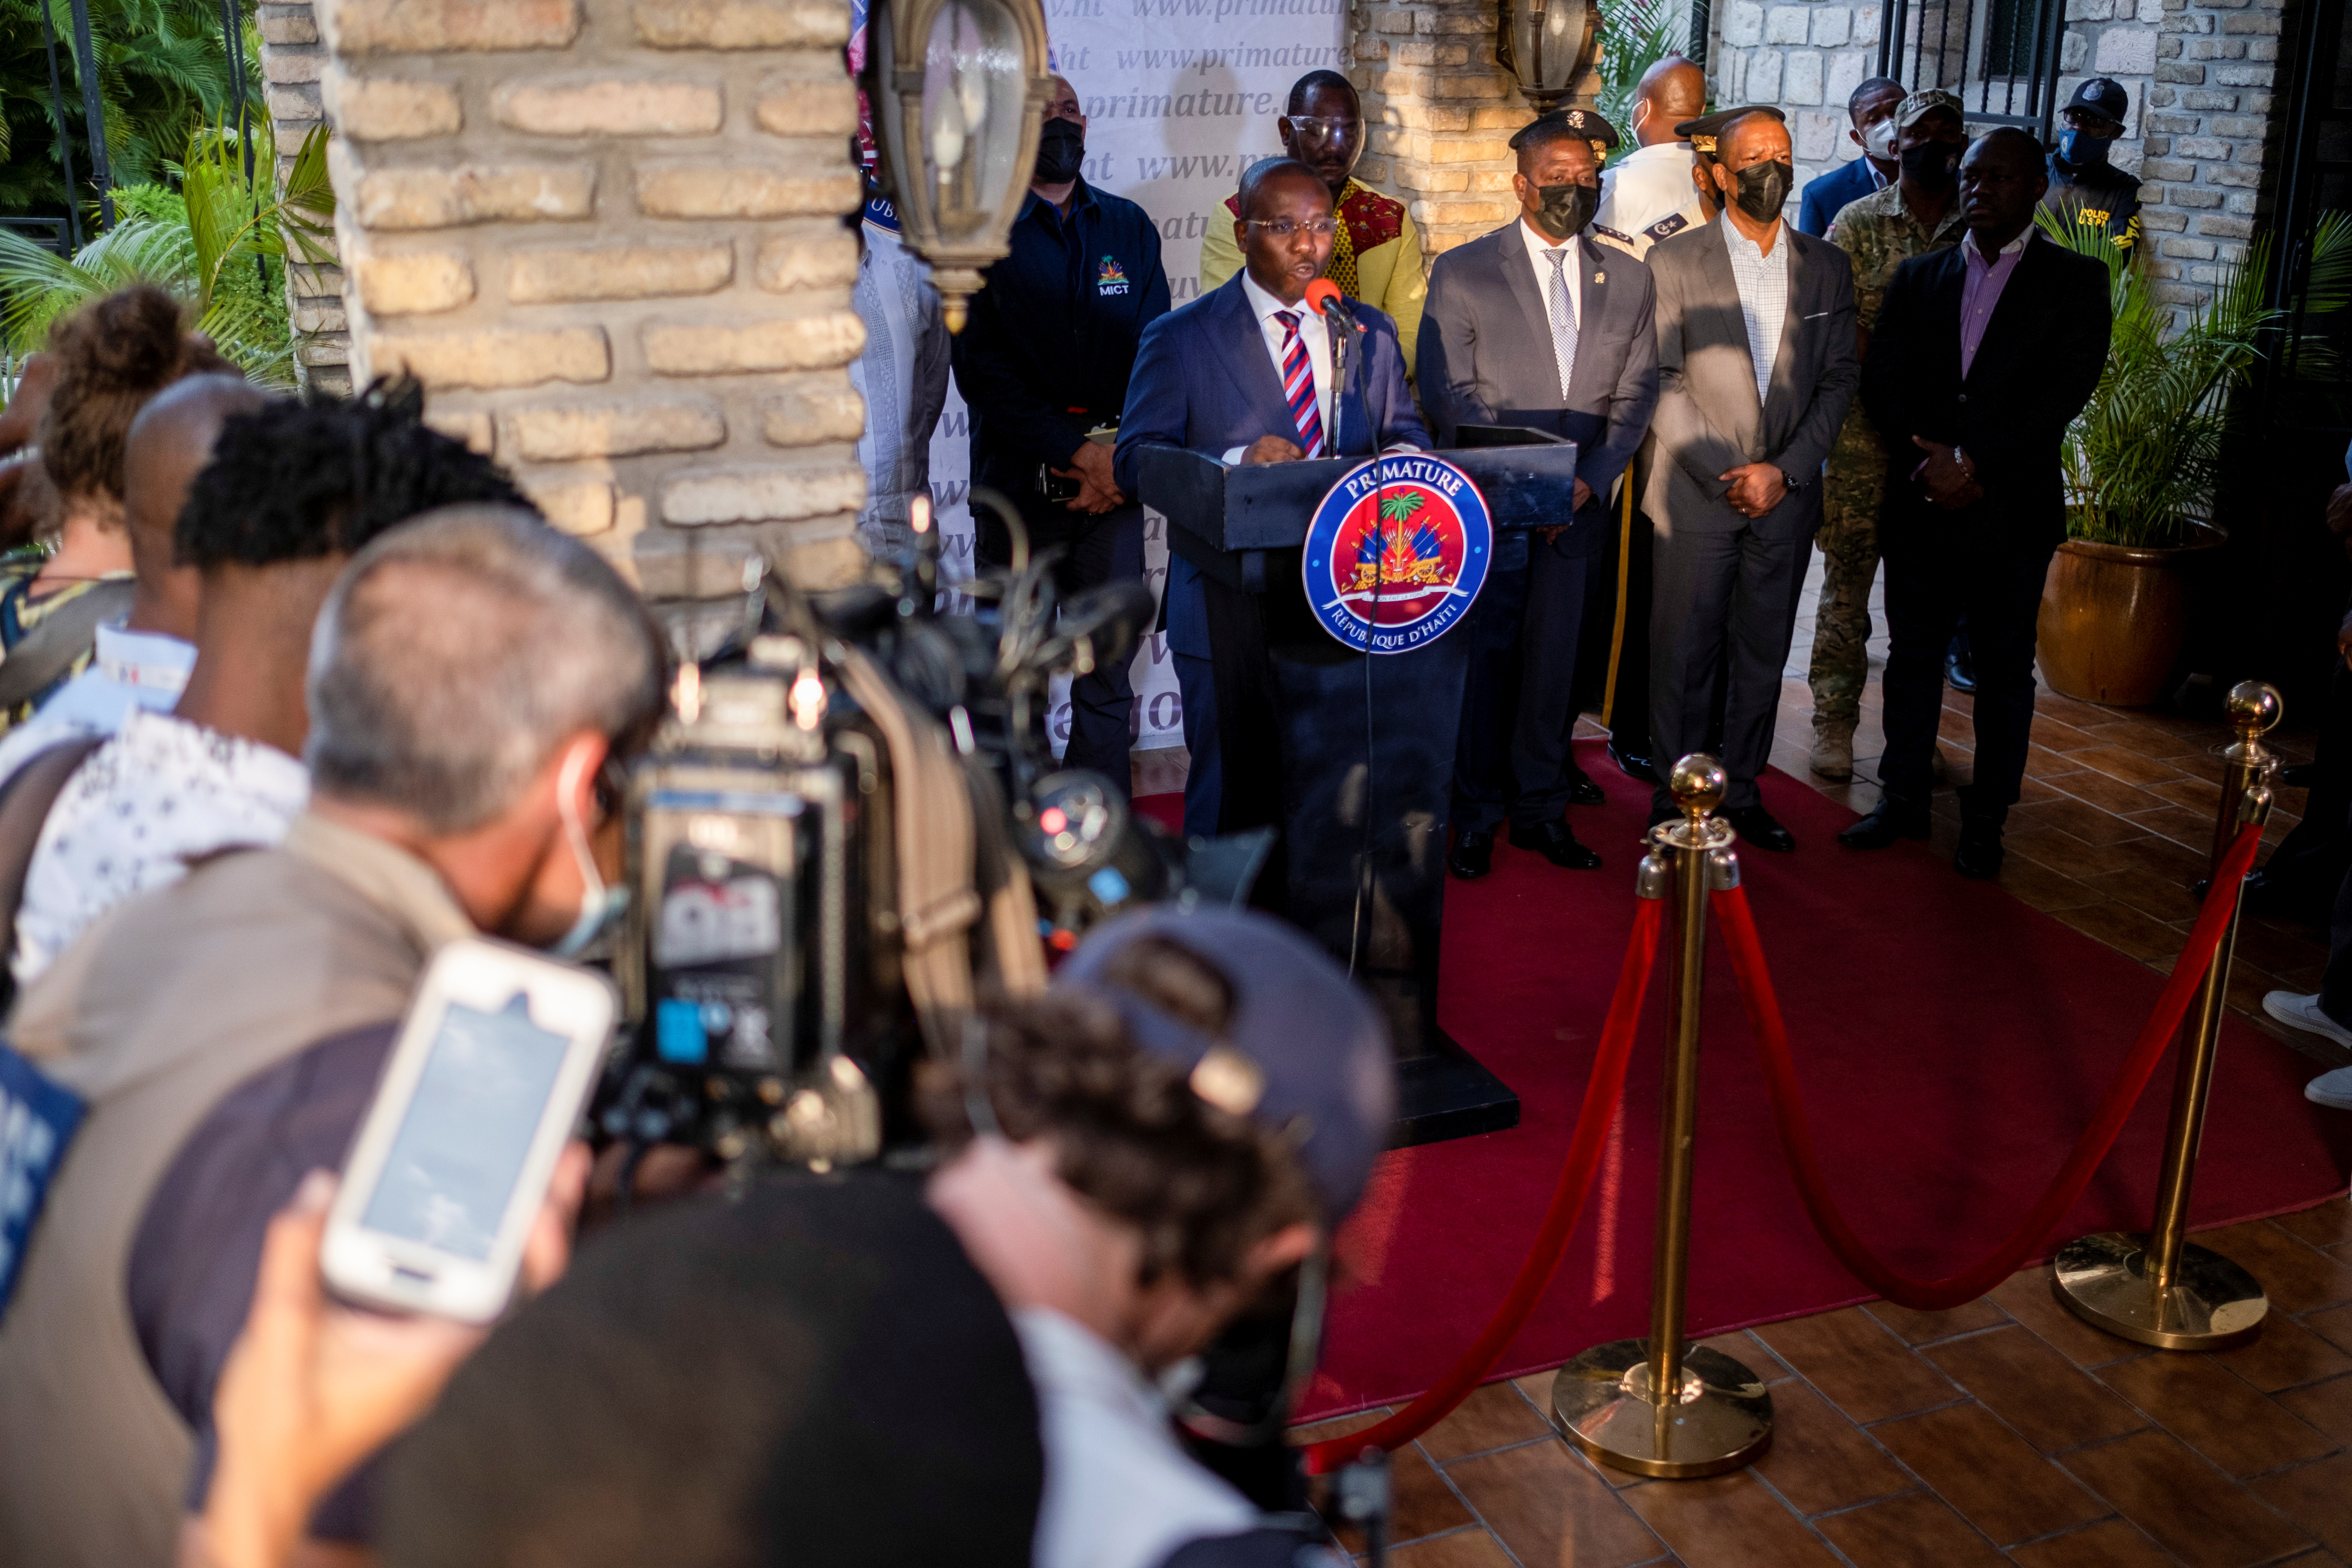 Haiti's interim Prime Minister Claude Joseph speaks during a news conference following the assassination of President Jovenel Moise, in Port-au-Prince, Haiti July 11, 2021.  REUTERS/Ricardo Arduengo